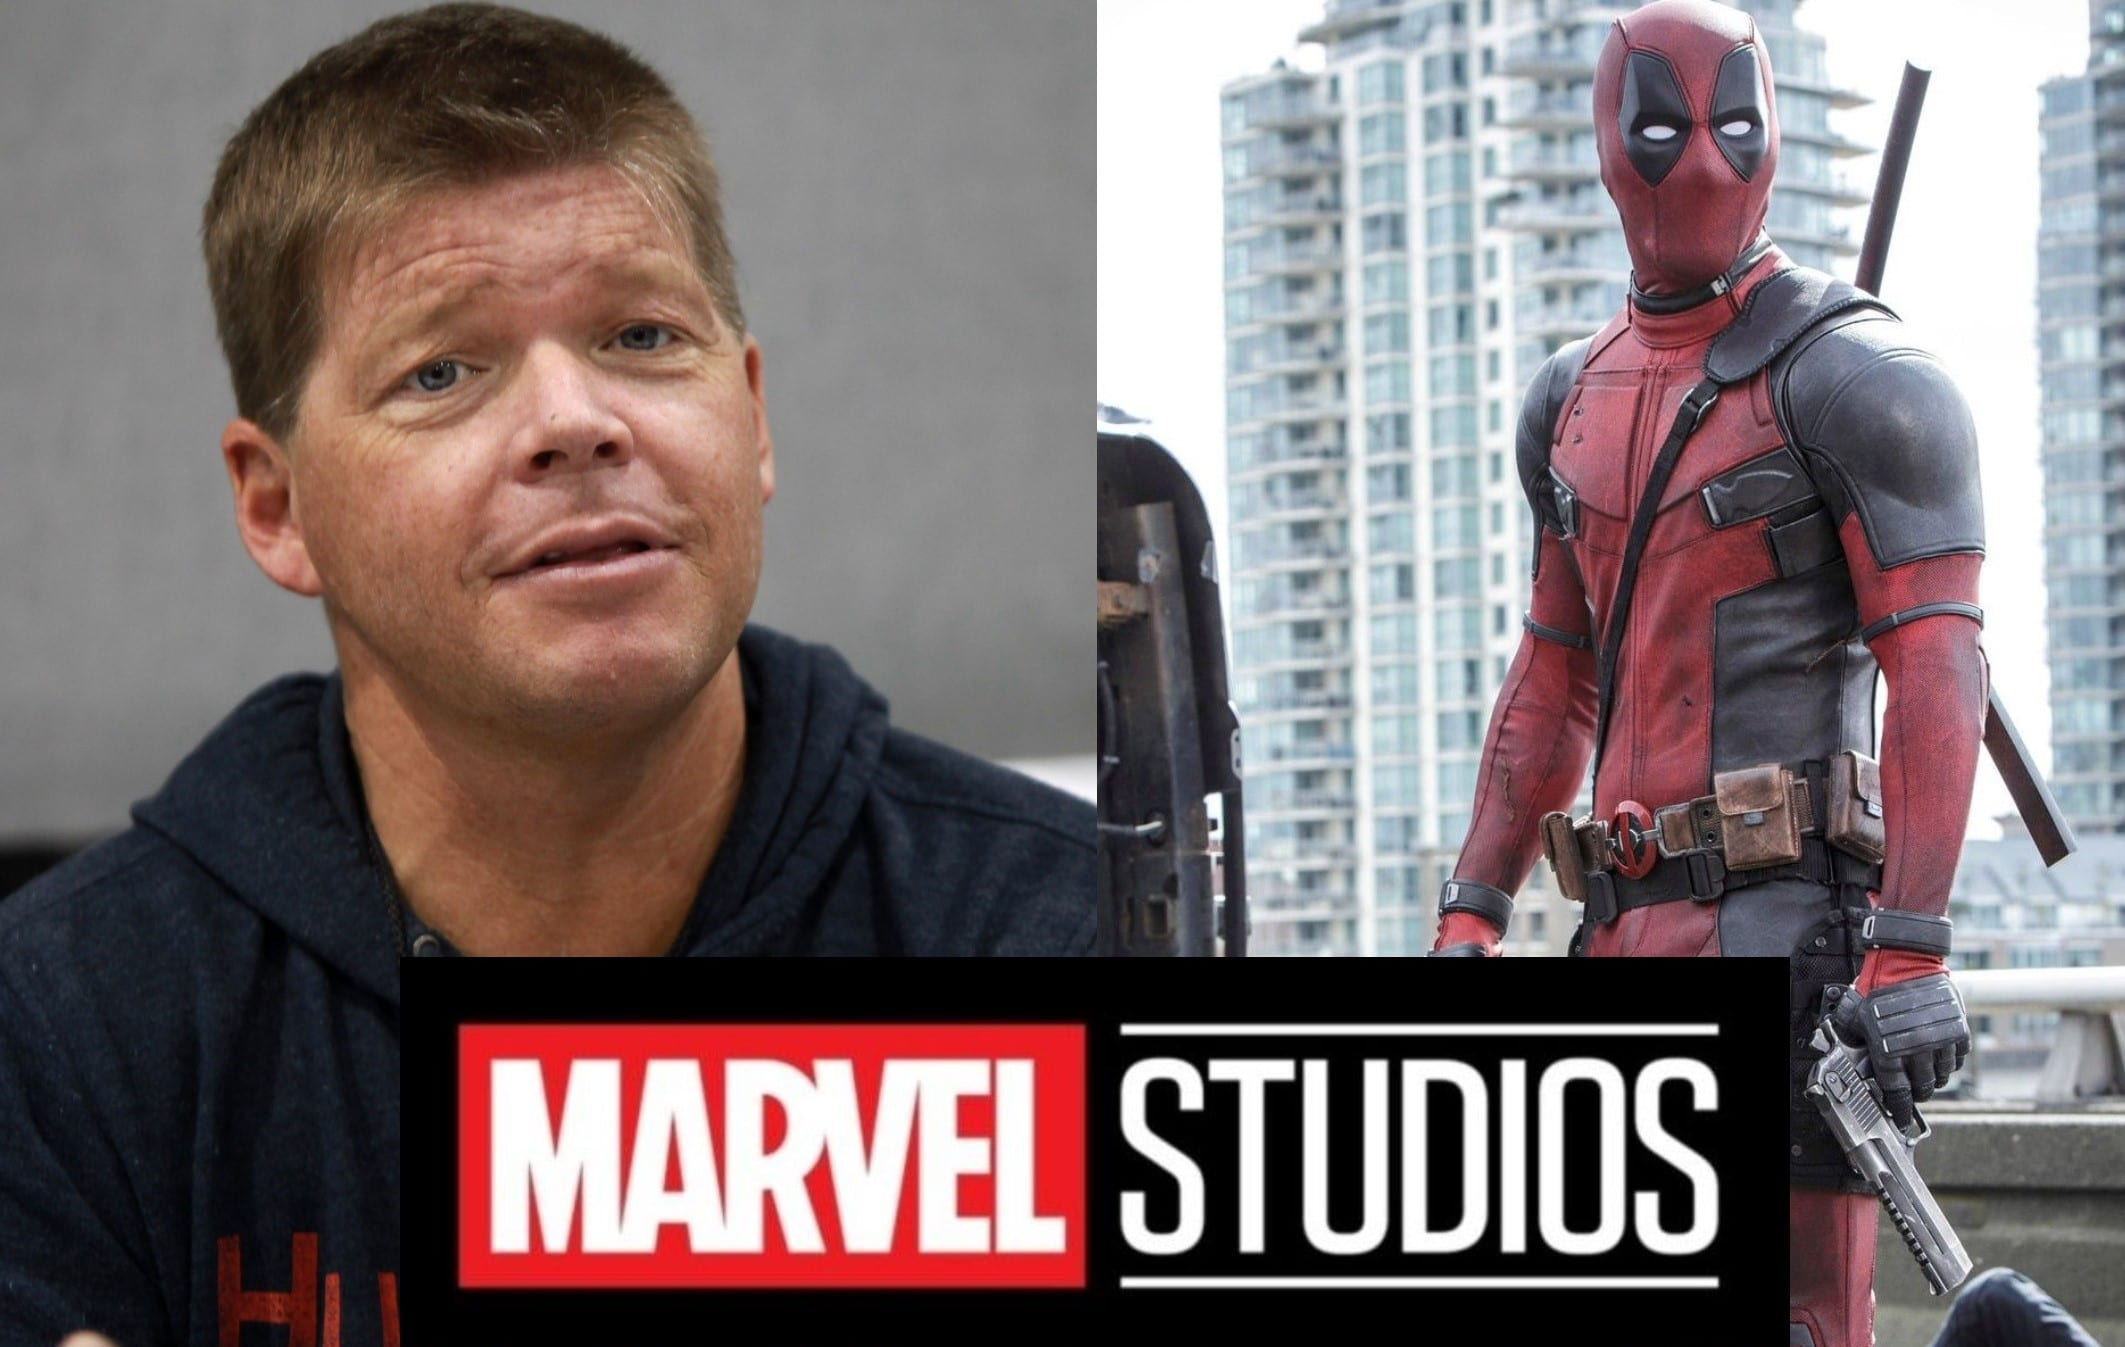 Deadpool Creator Rob Liefeld says it's Marvel Studios fault that a third film has not happened yet